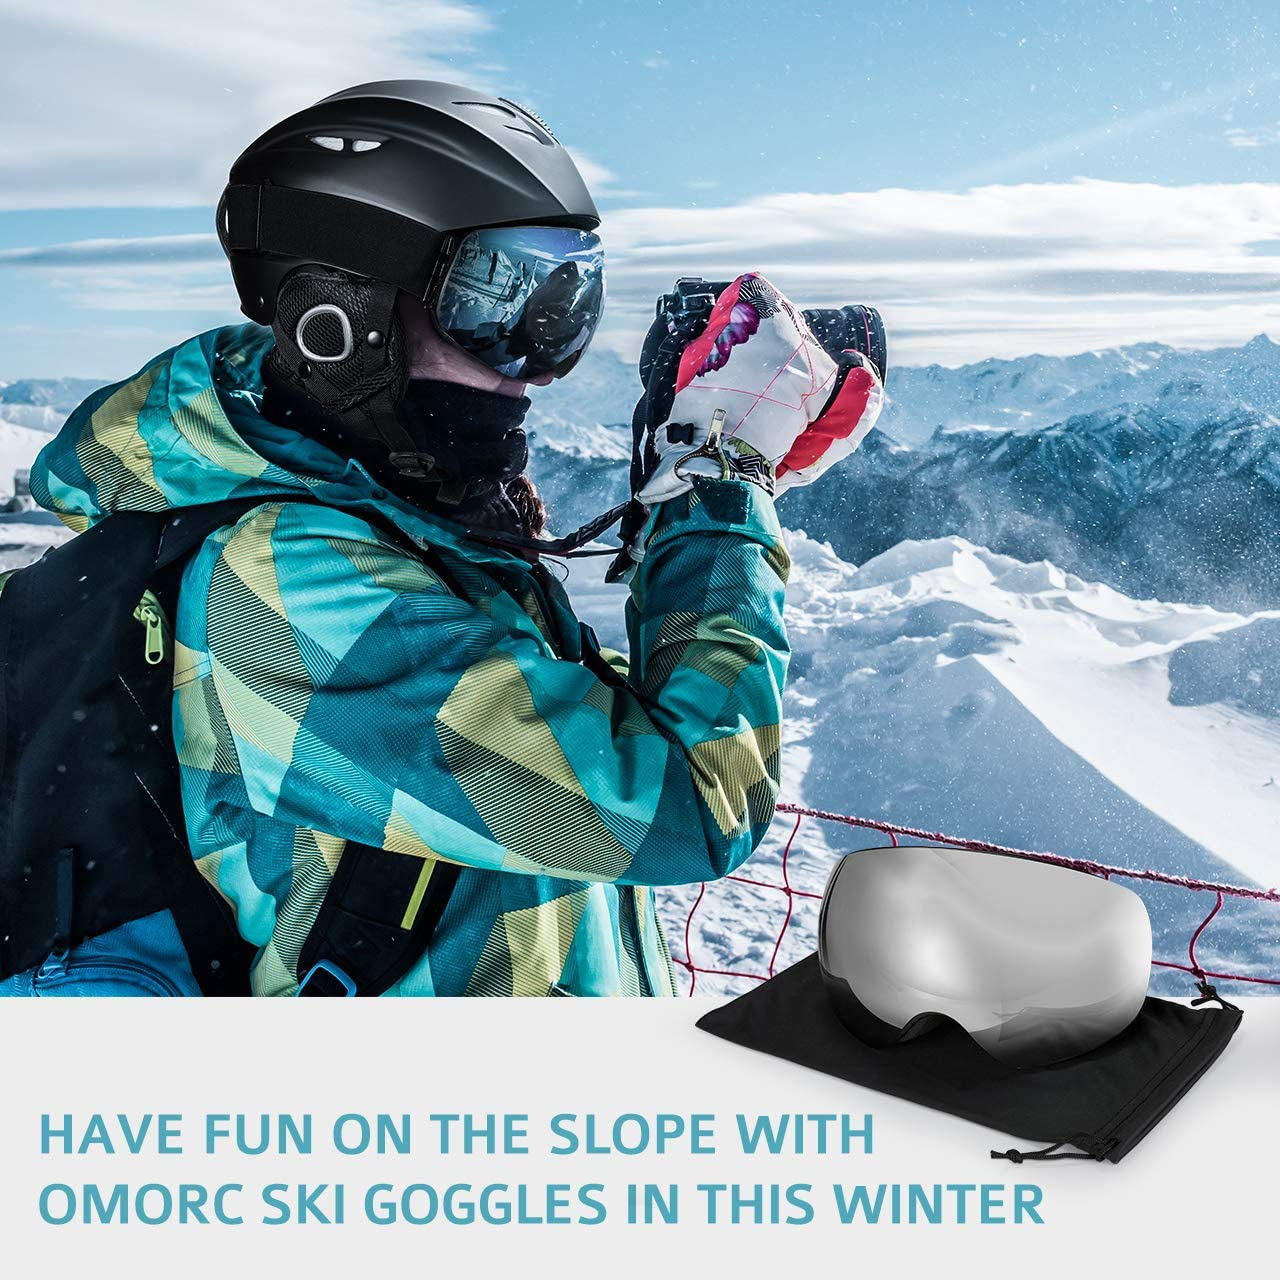 OMORC Ski Goggles Anti-Fog /& OTG Design Snowboard Skate Goggles Snowmobile Ski Snow Glasses with 100/% UV400 Protection,Super-wide Angle and Spherical Dual-layer Lens,Bendable Frame,Anti-slip Strap for Men and Women